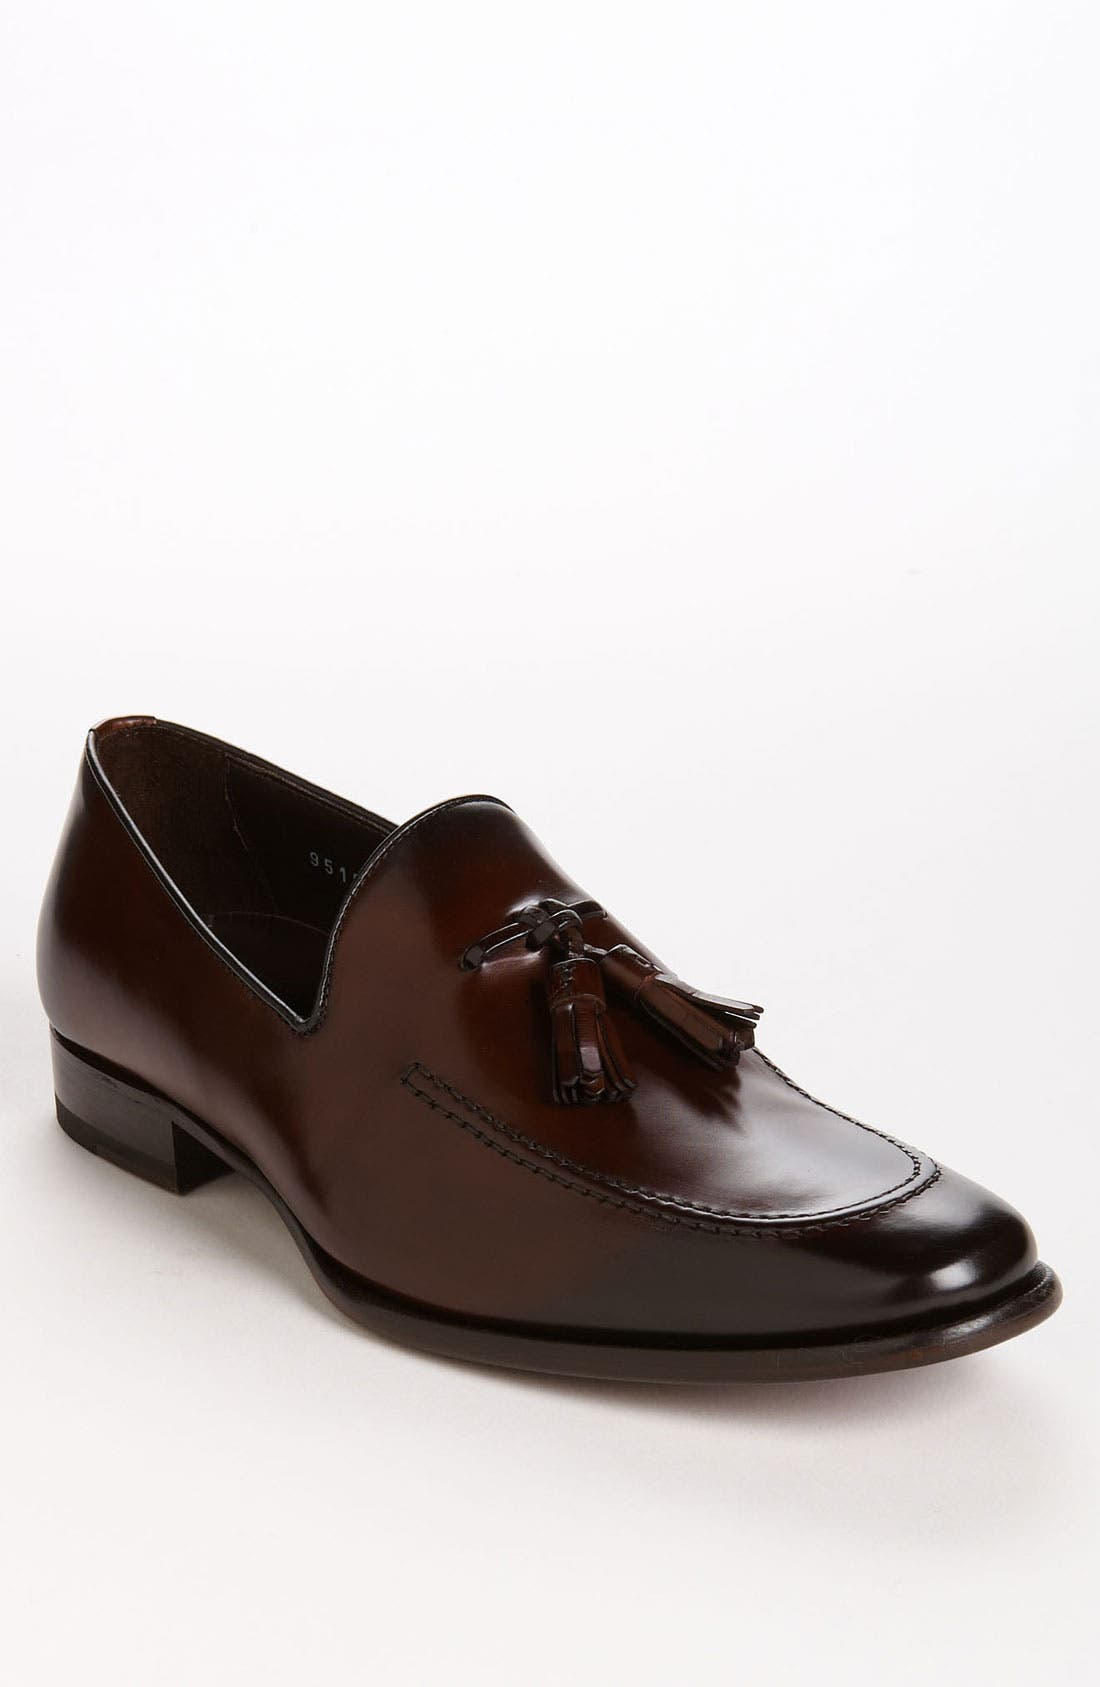 Main Image - To Boot New York 'Alex' Tassel Loafer